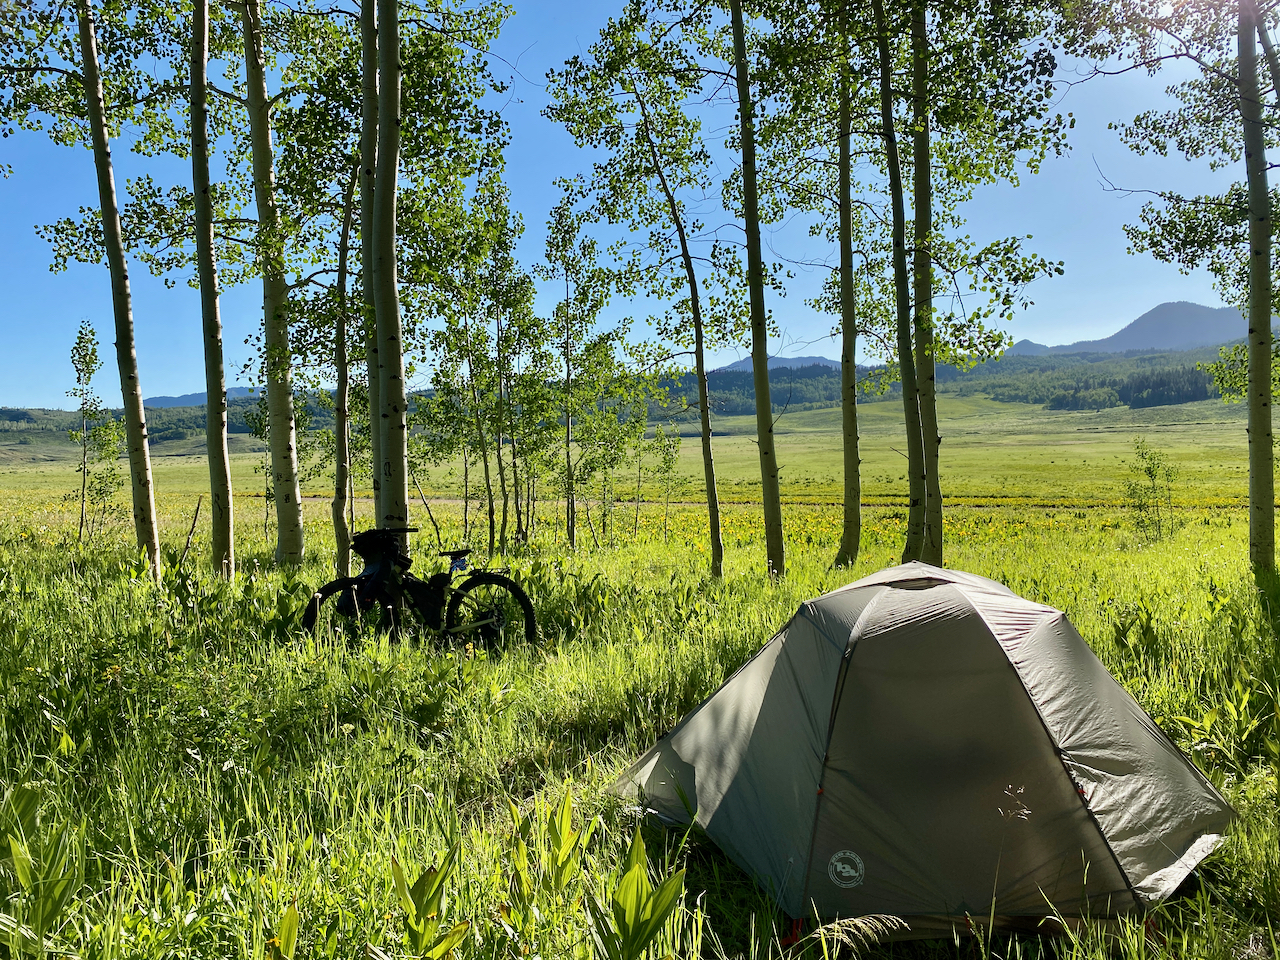 Bikepacking on the Great Divide Trail.